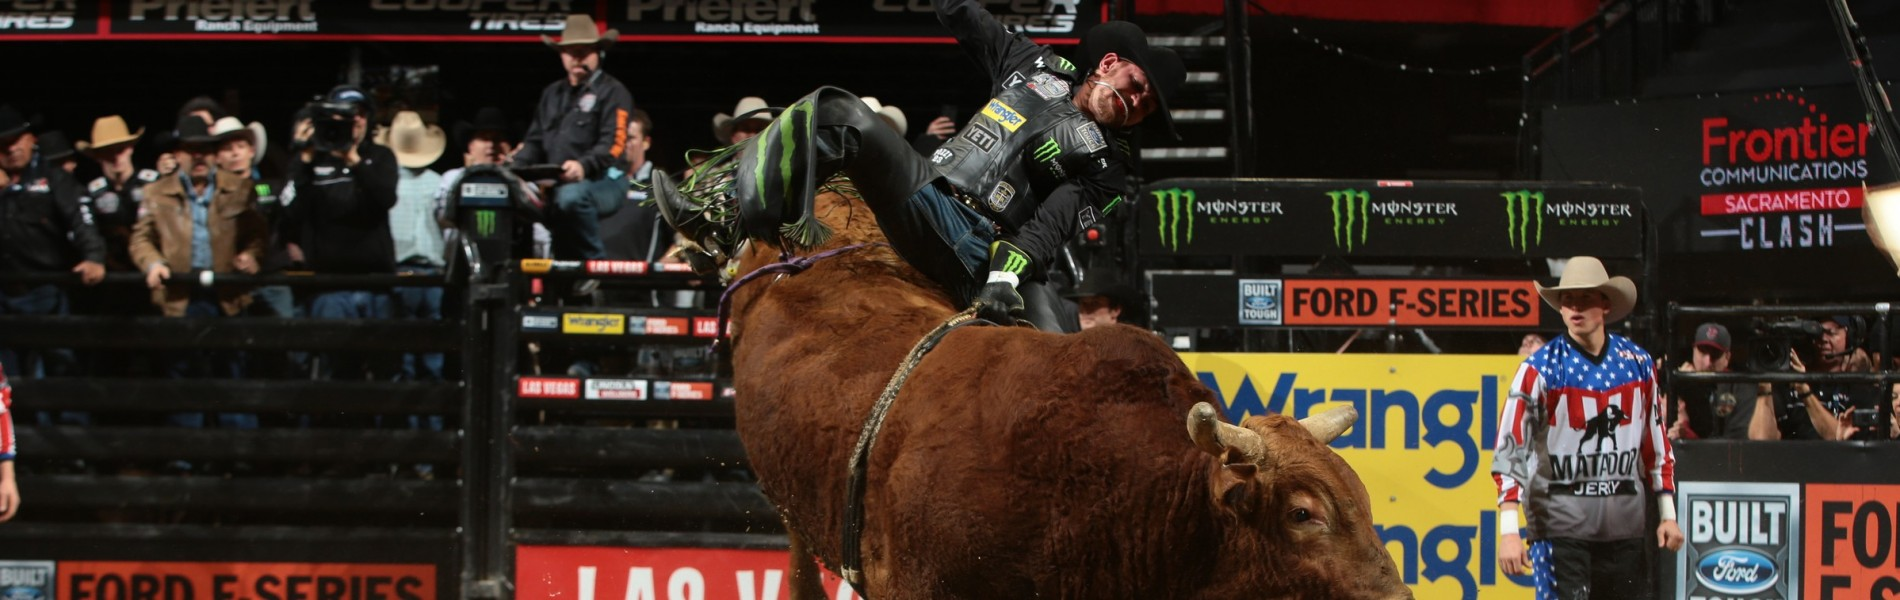 Chase Outlaw rides Julio Moreno Bucking Bulls's Mortimer for 87.5 during the second round of the Sacramento Built Ford Tough series PBR